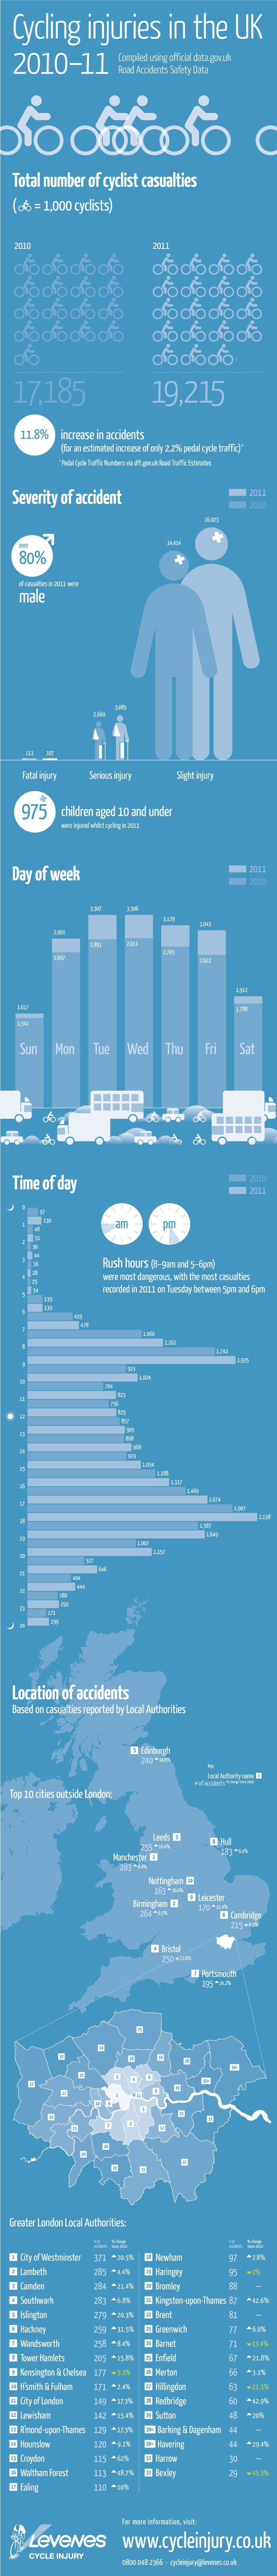 UK Cycling Accidents 2011